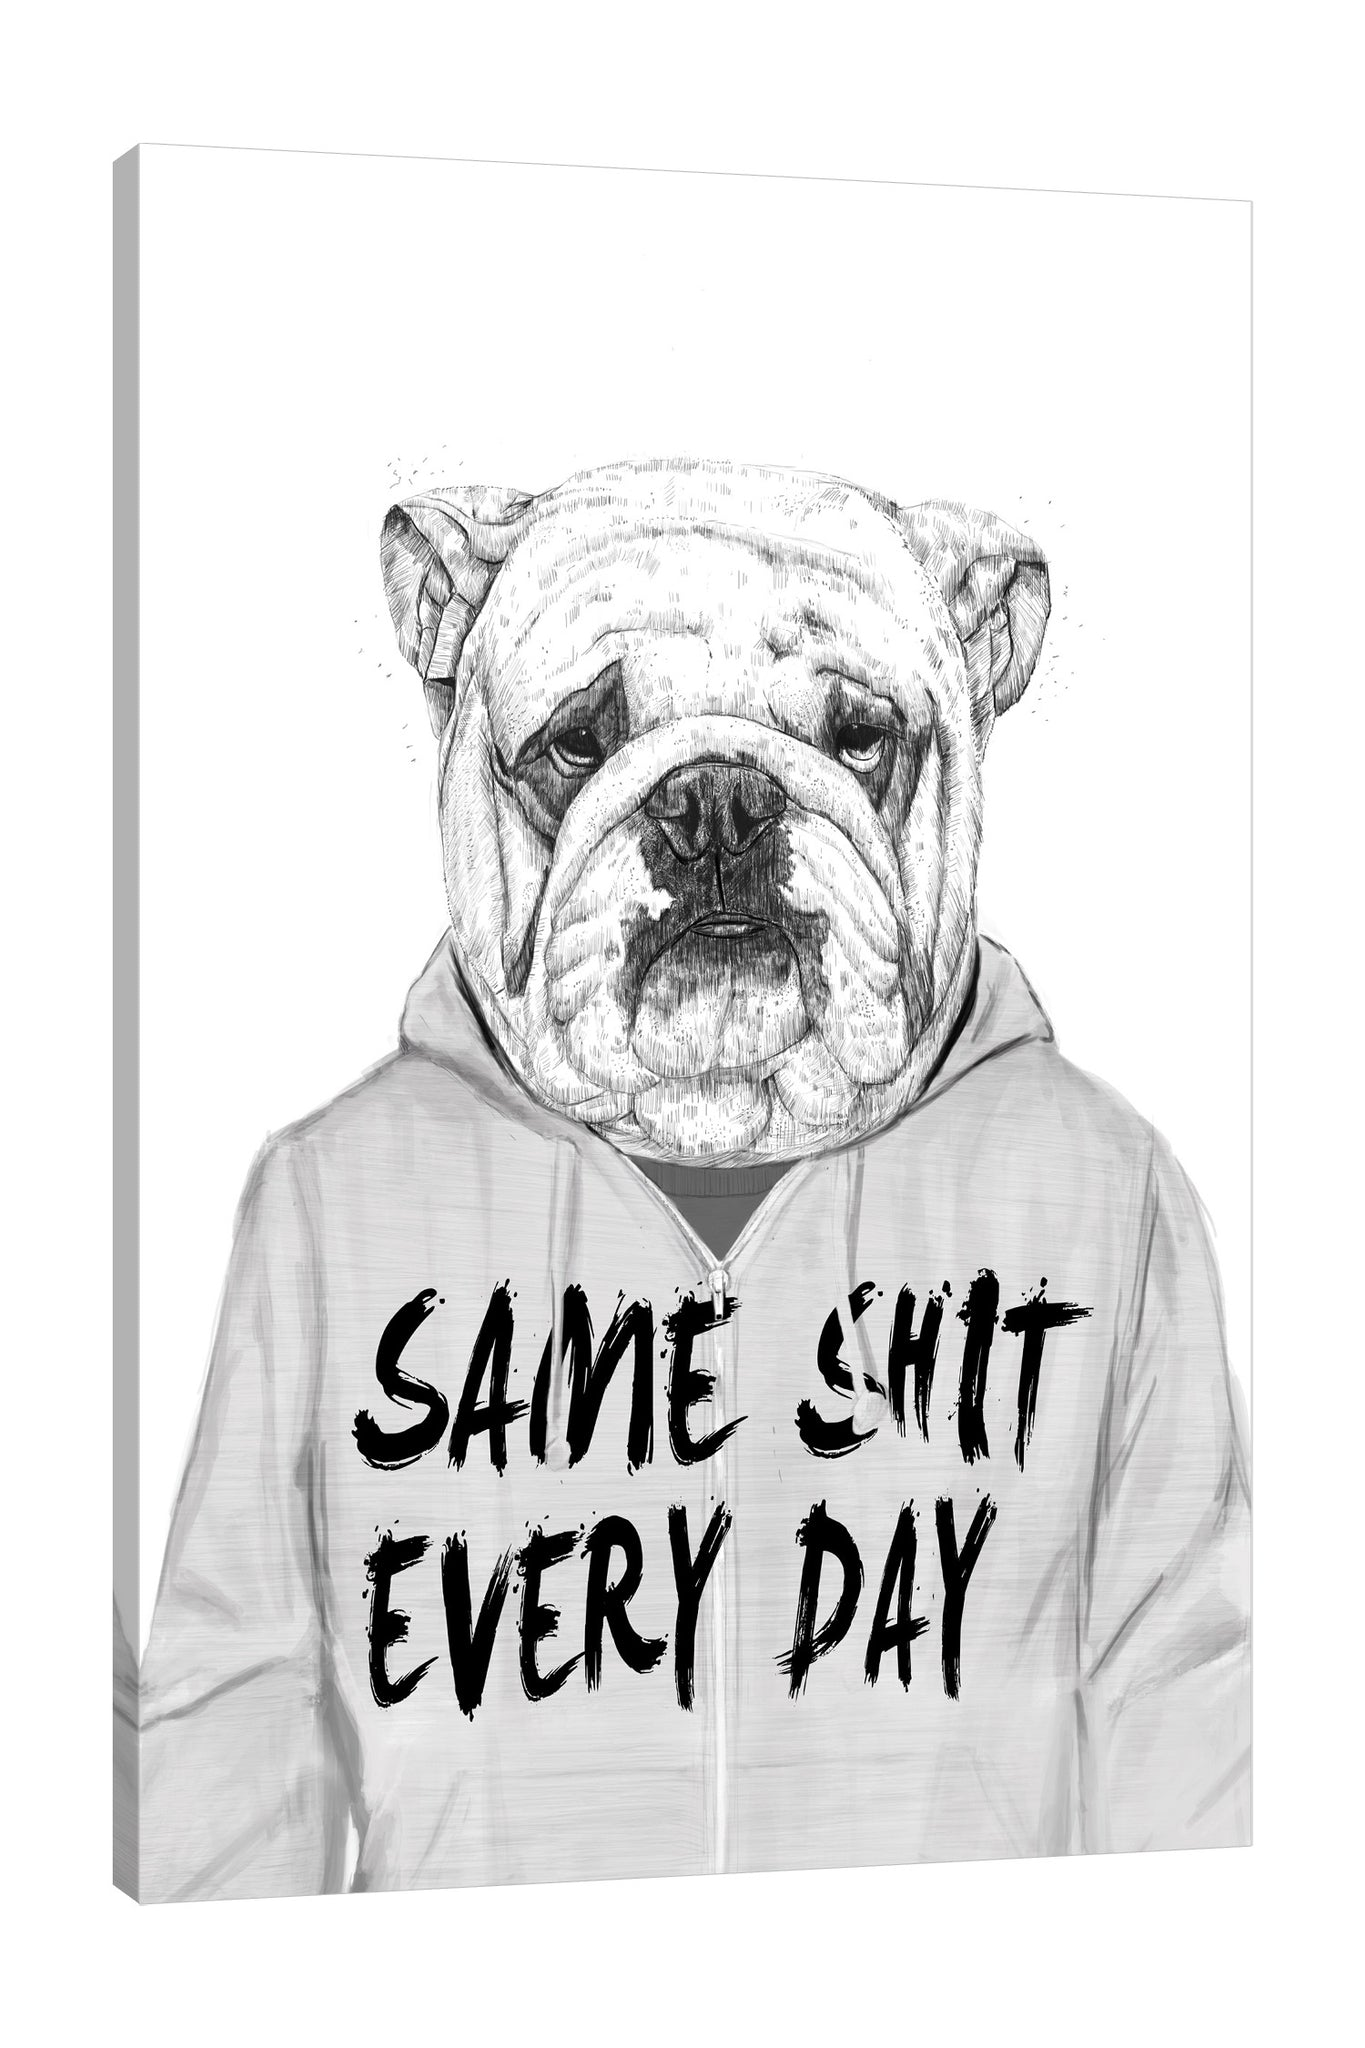 Balazs-Solti,Modern & Contemporary,Animals,animals,animal,dogs,dog,words,word,same shit,same shit every day,jacket,gray,Red,Gray,White